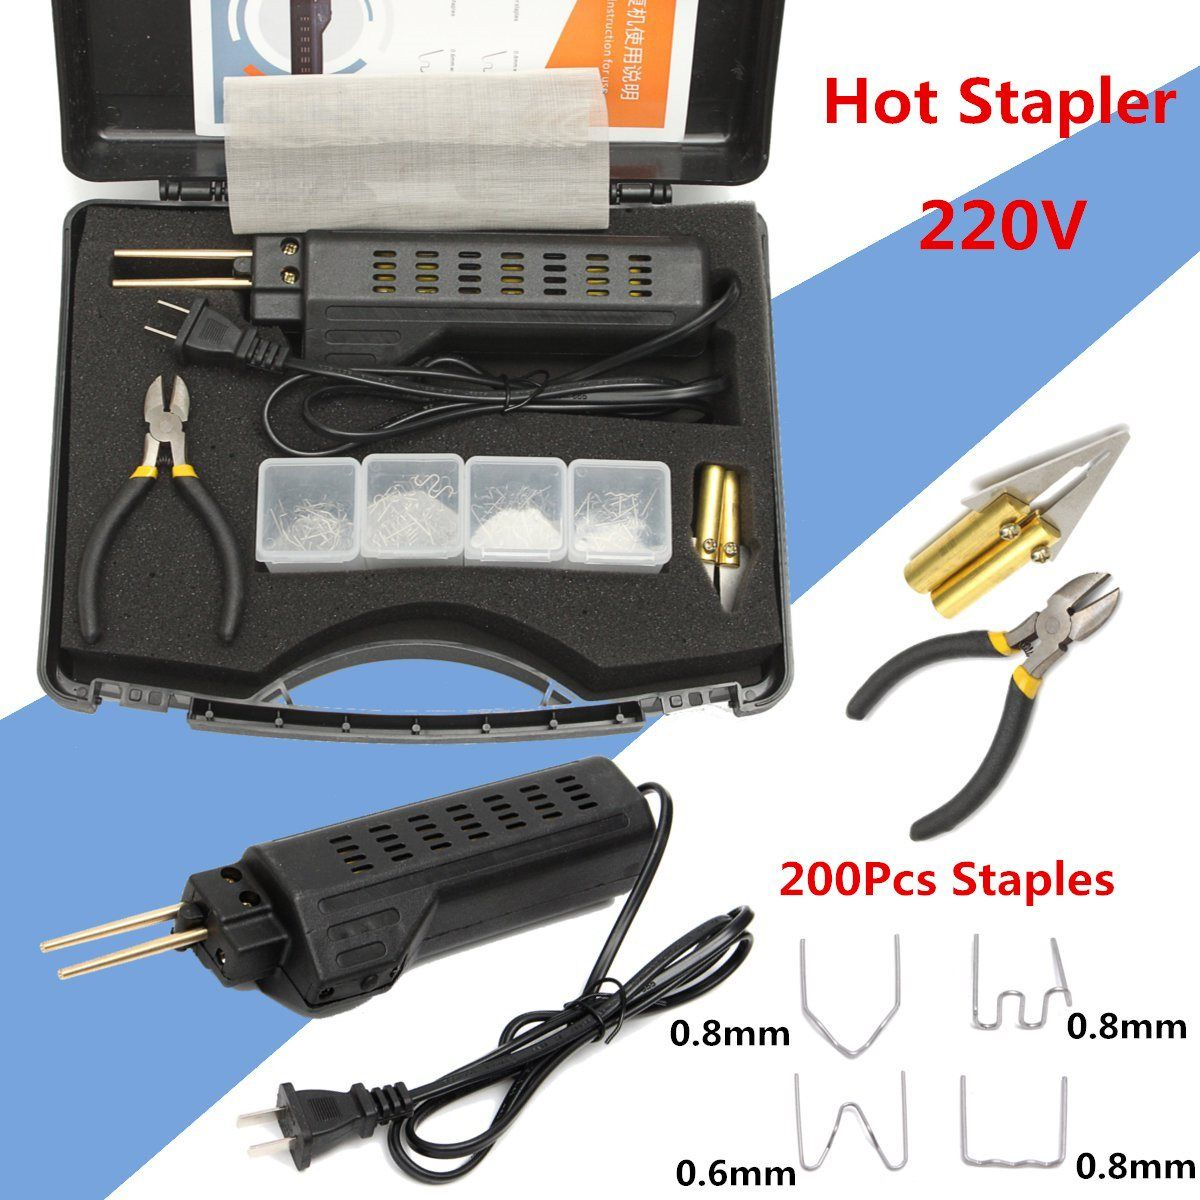 New 220-250V Hot Stapler Car Bumper Plastic Welding Torch Fairing Auto Body Tool Welder Machine 0.6/0.8mm + 200 Staples